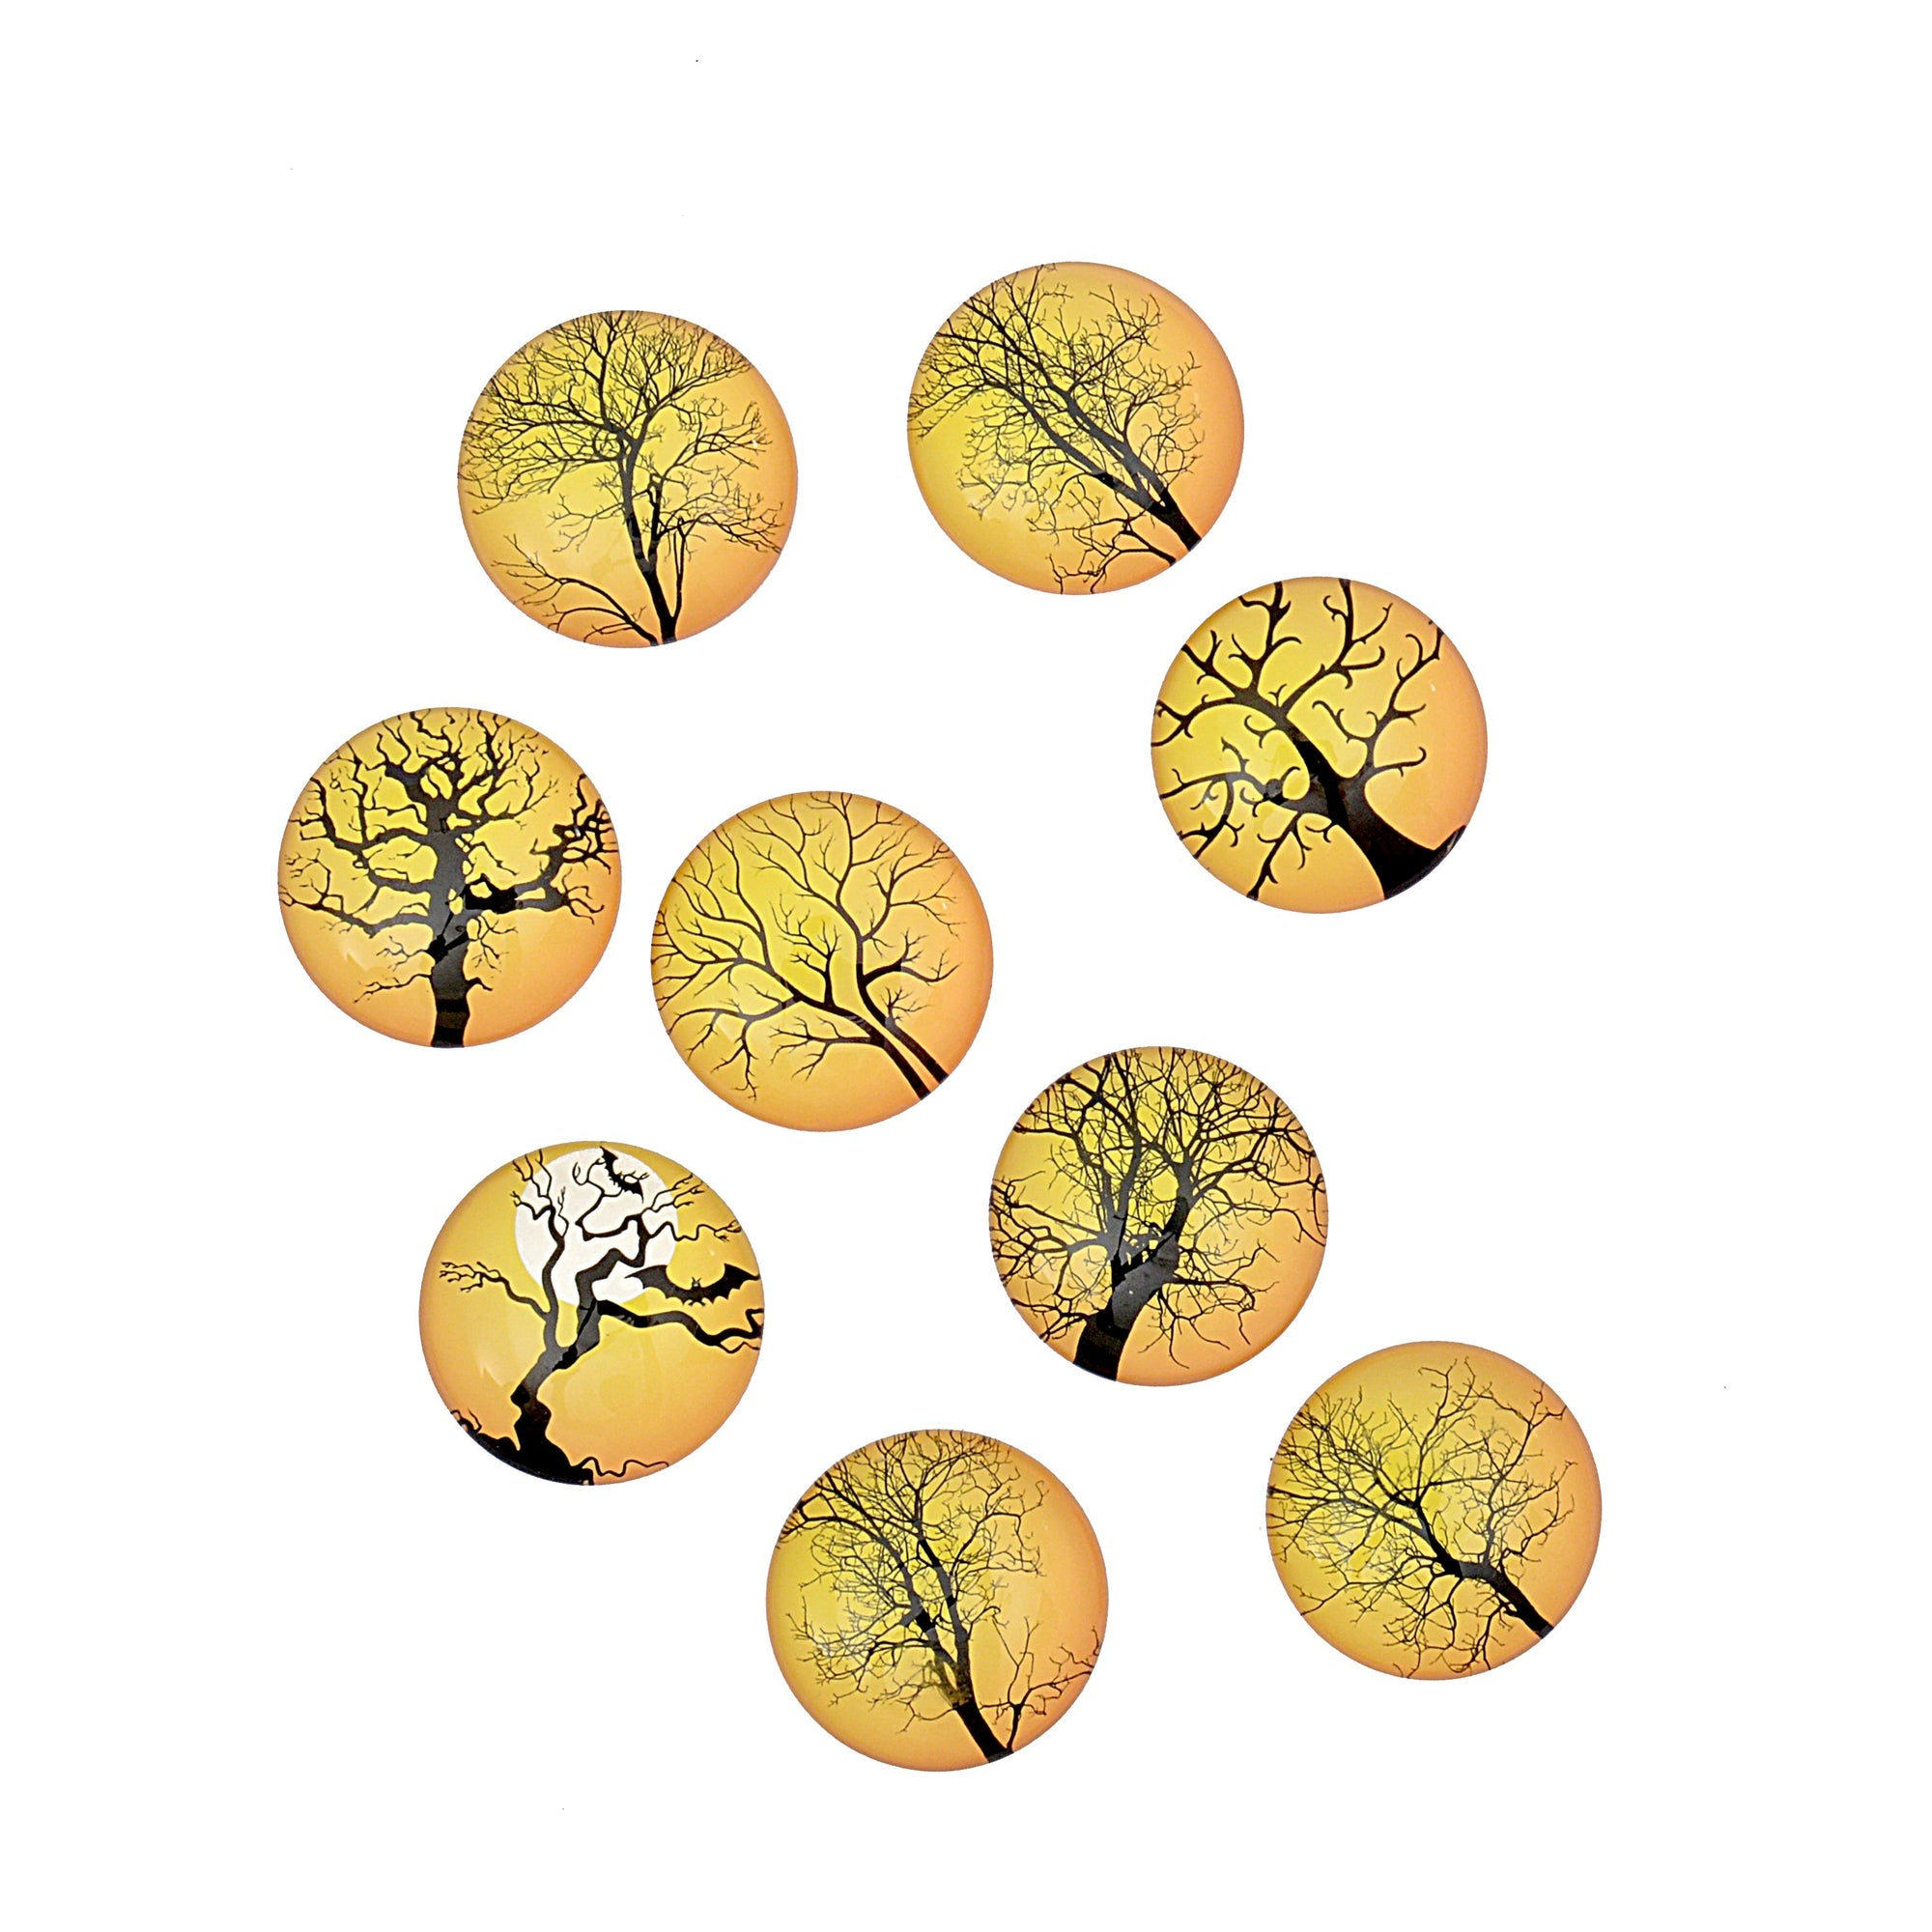 Decorative Tree Design Fridge Magnets (Pack of 2)